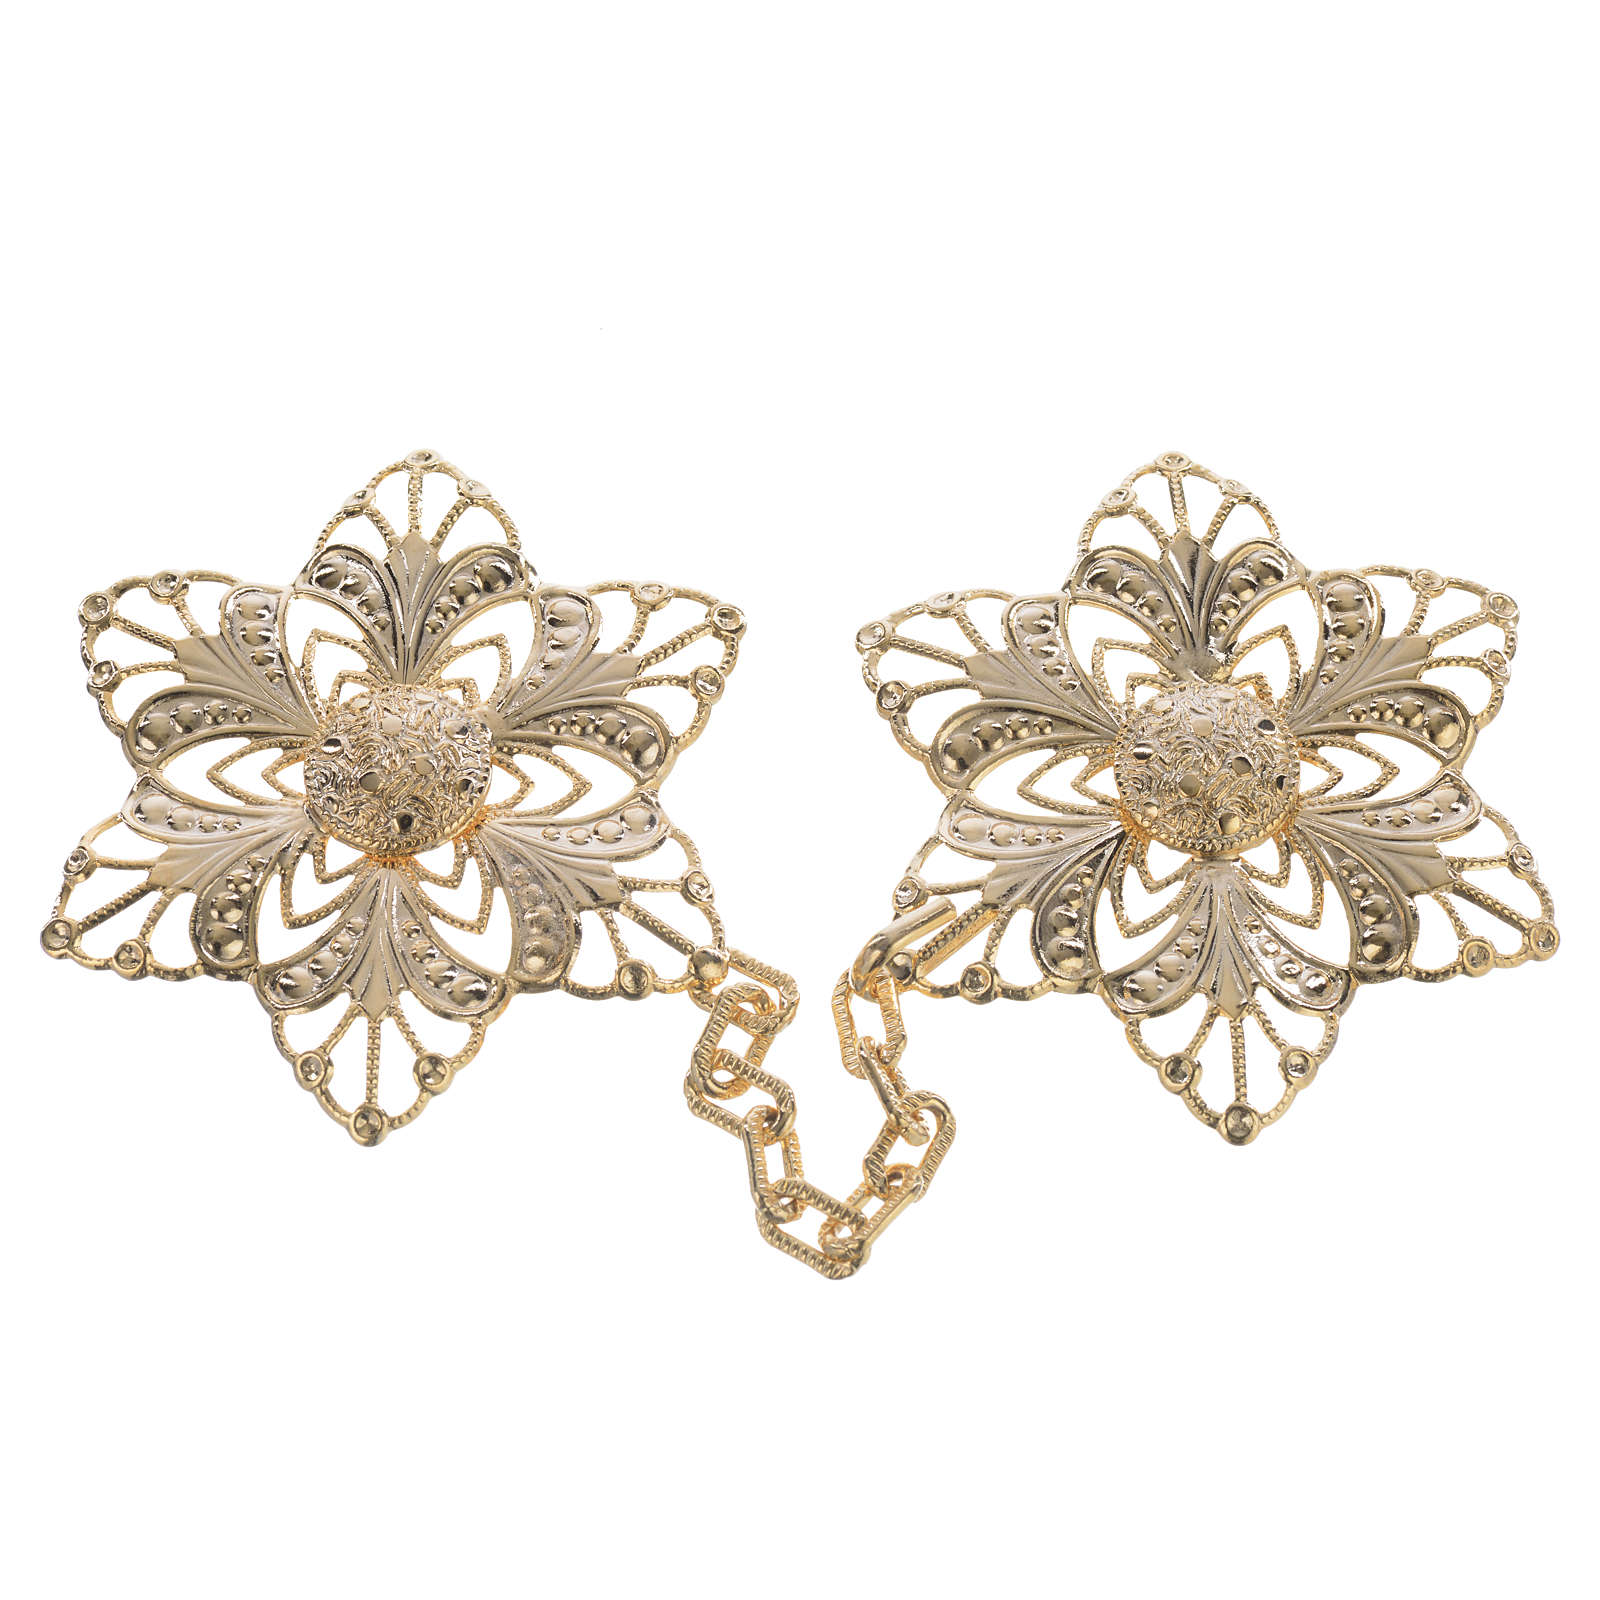 Cope clasp, gold-plated flower 4